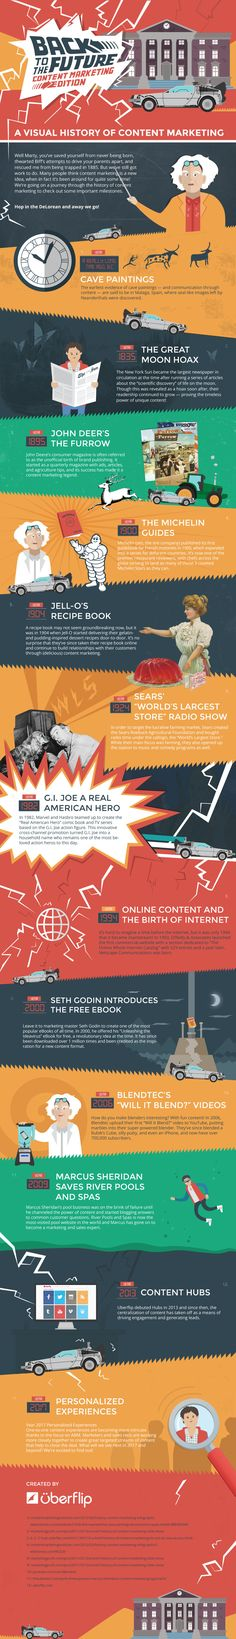 A Visual History of Content Marketing [Infographic] | Social Media Today